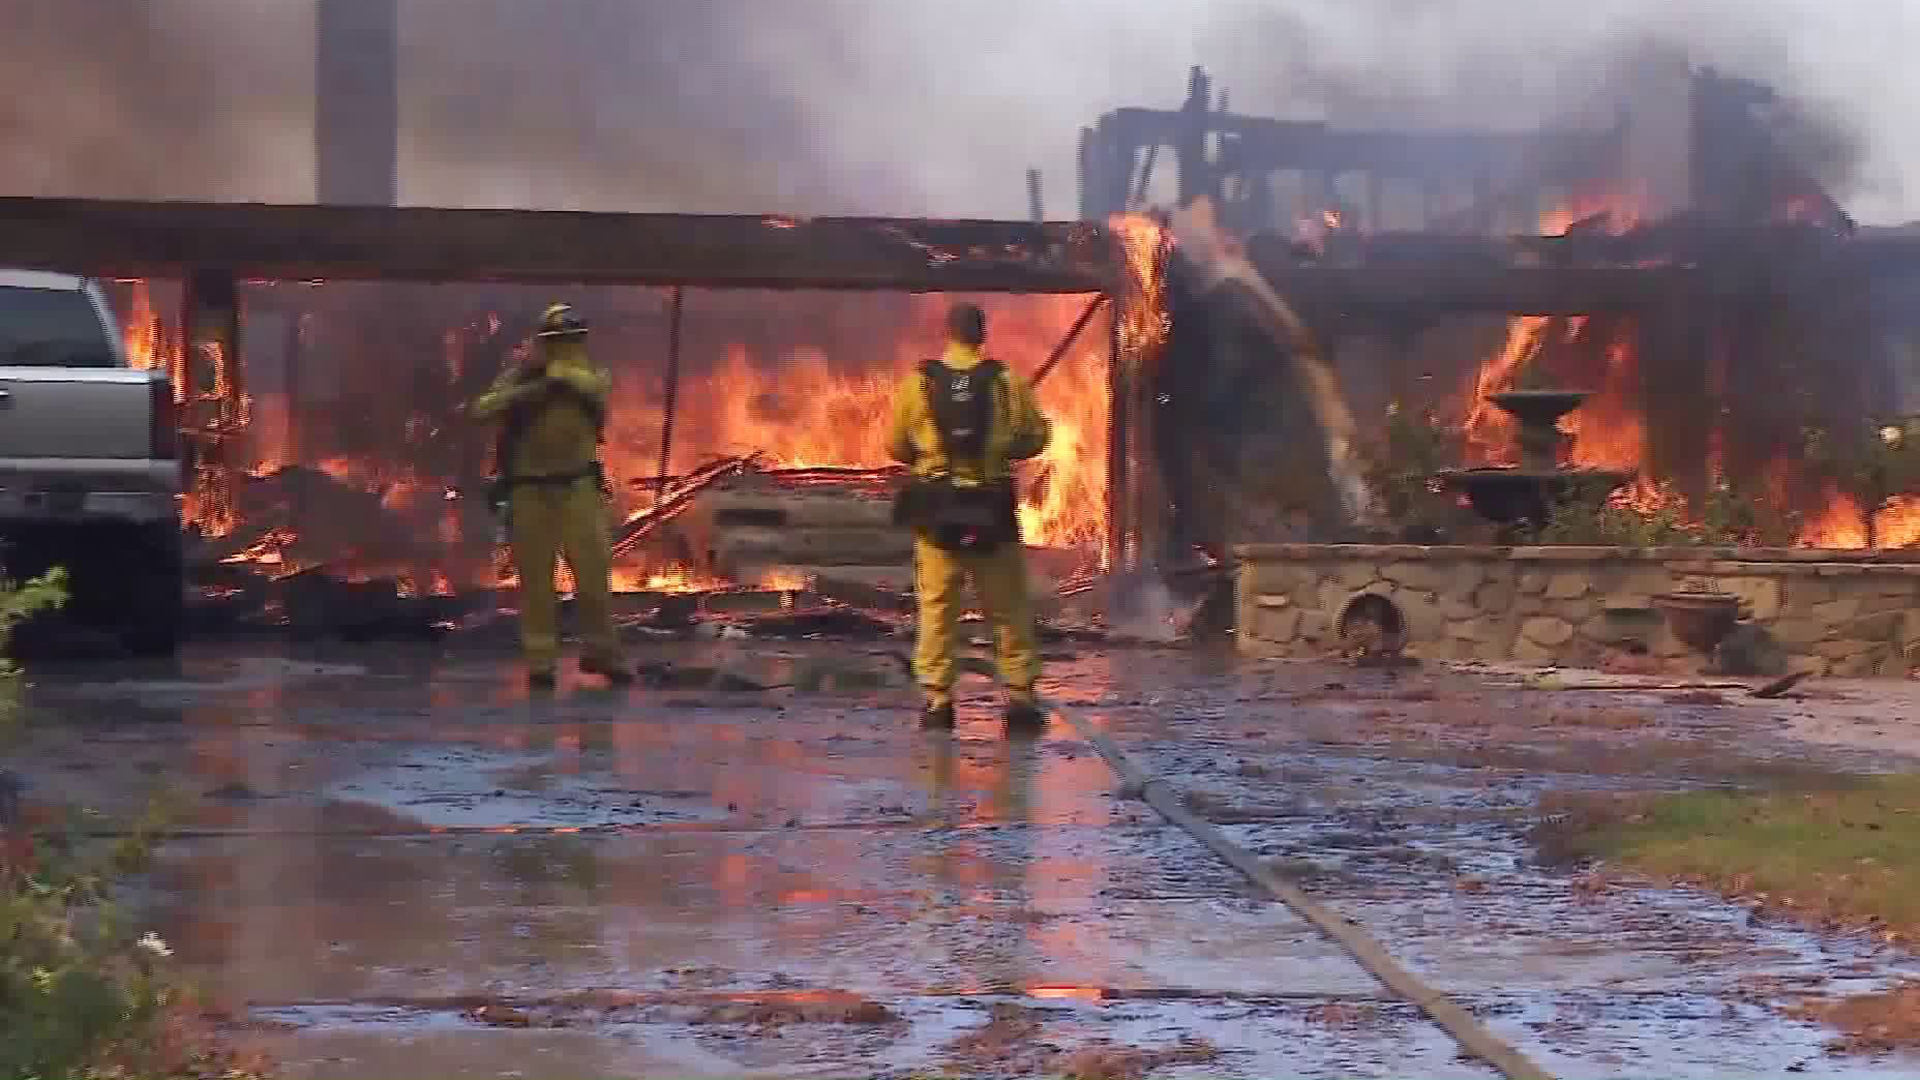 A home in Anaheim Hills appears to be destroyed during the Canyon Fire 2 on Oct. 9, 2017. (Credit: KTLA)